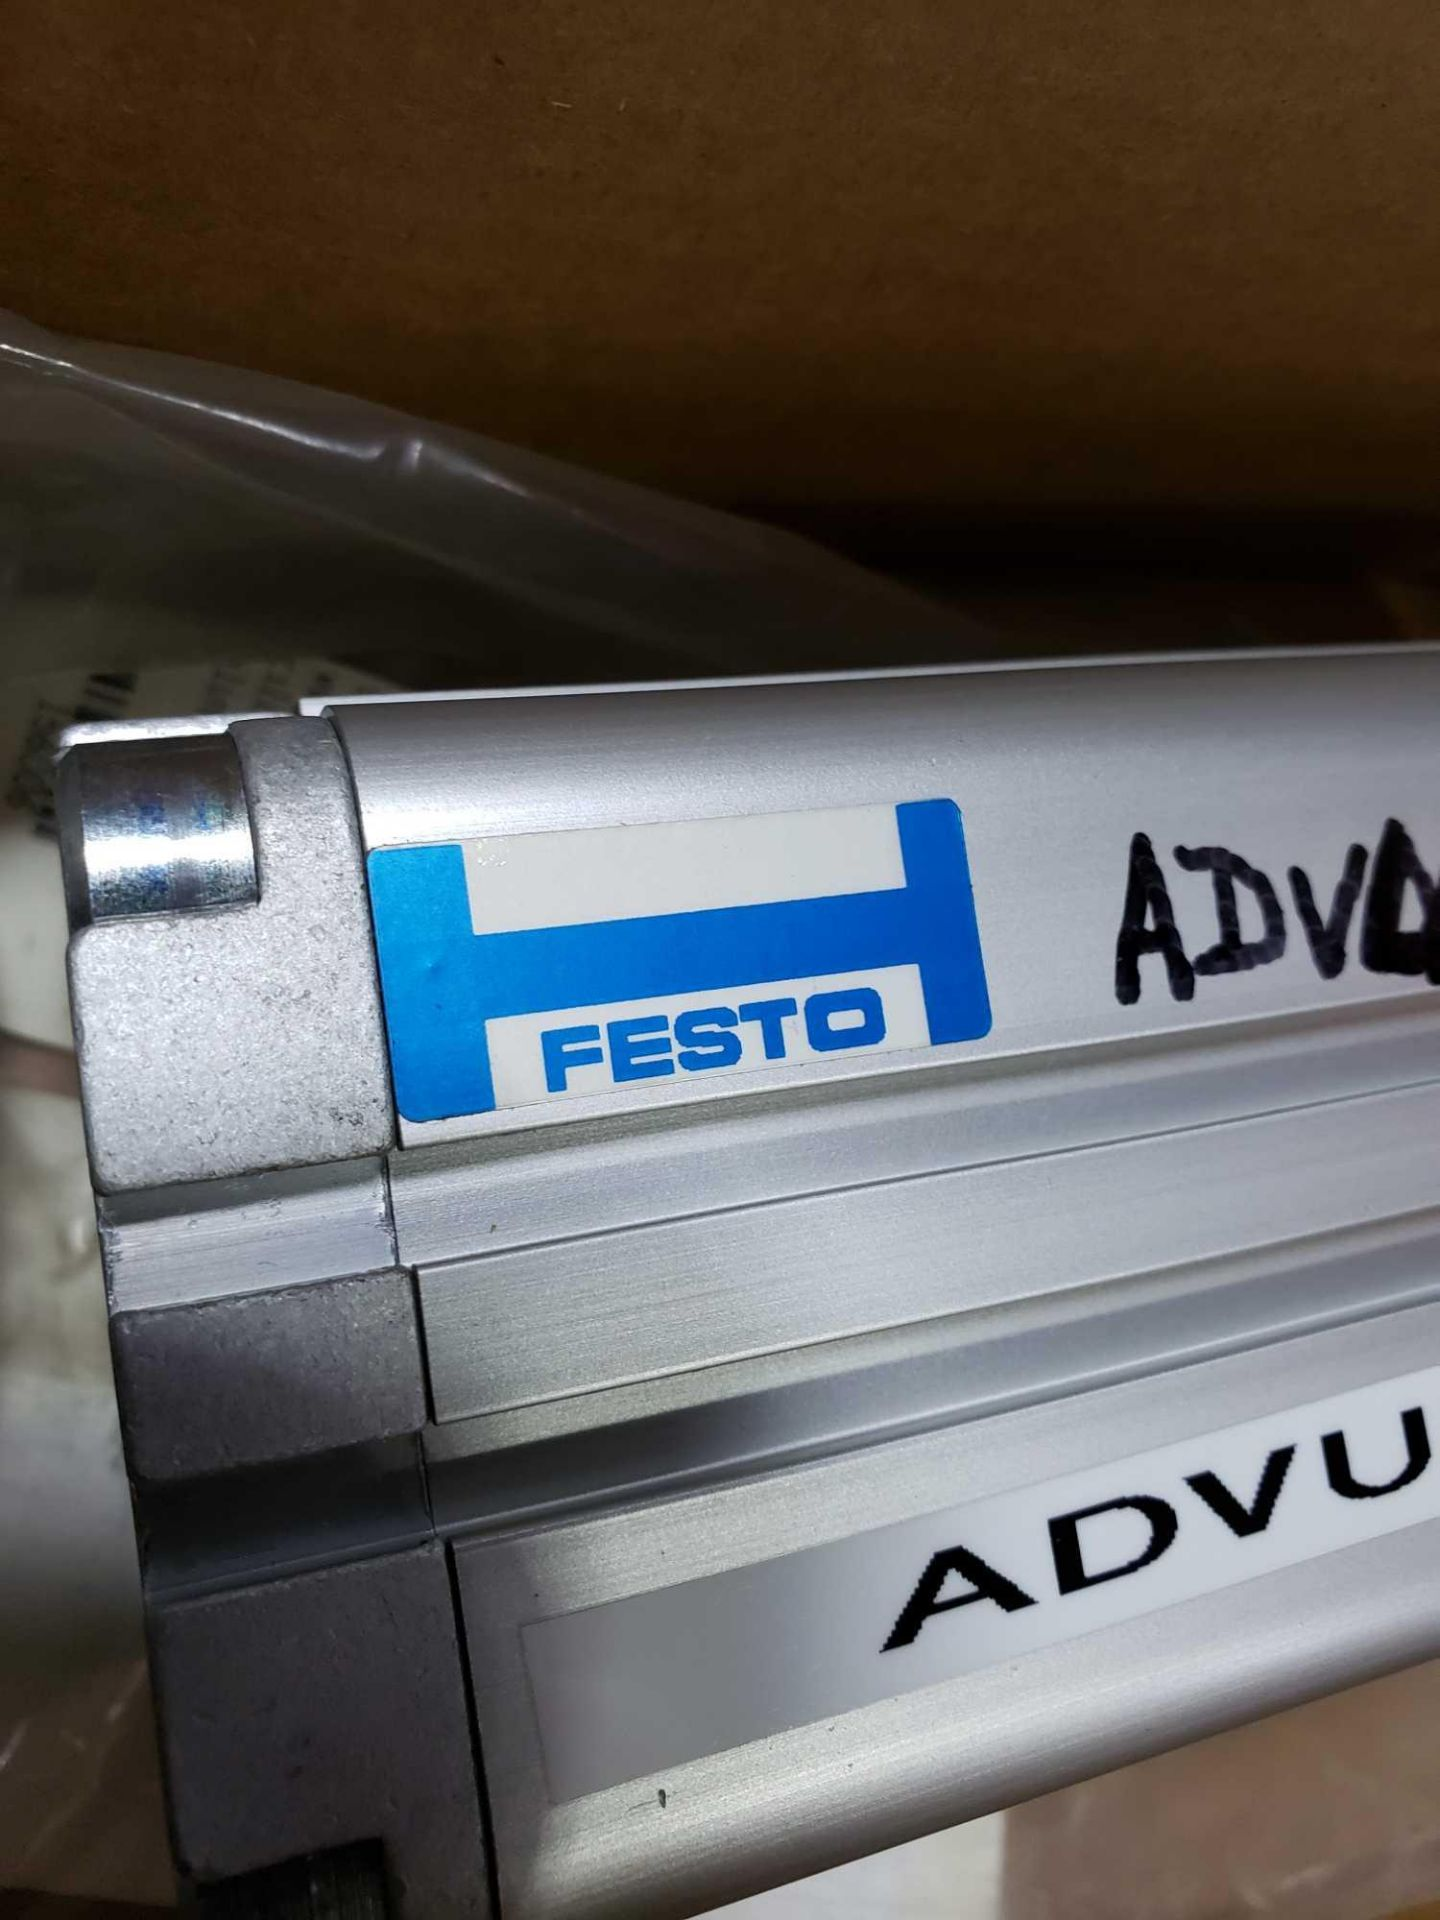 Lot 353 - Festo model ADVU-50-120-PA cylinder. New with minor wear and markings as pictured.